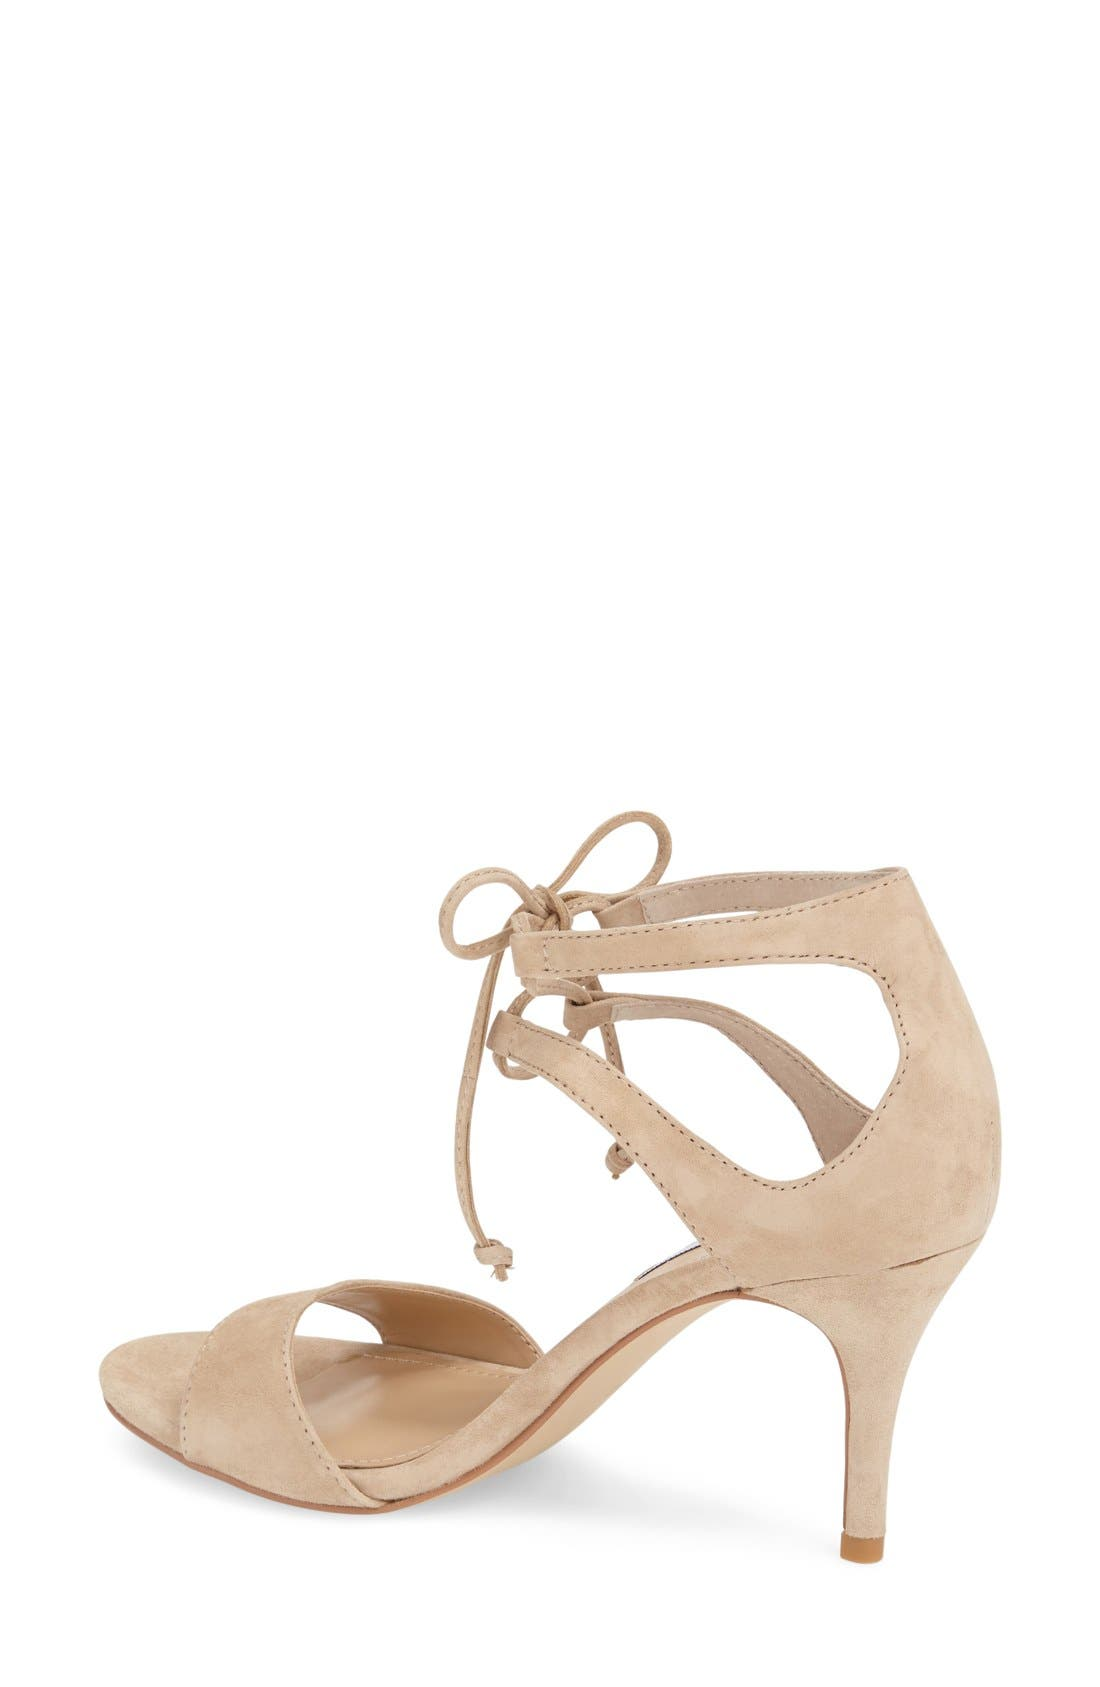 'Salsaa' Lace-Up Ankle Strap Sandal,                             Alternate thumbnail 6, color,